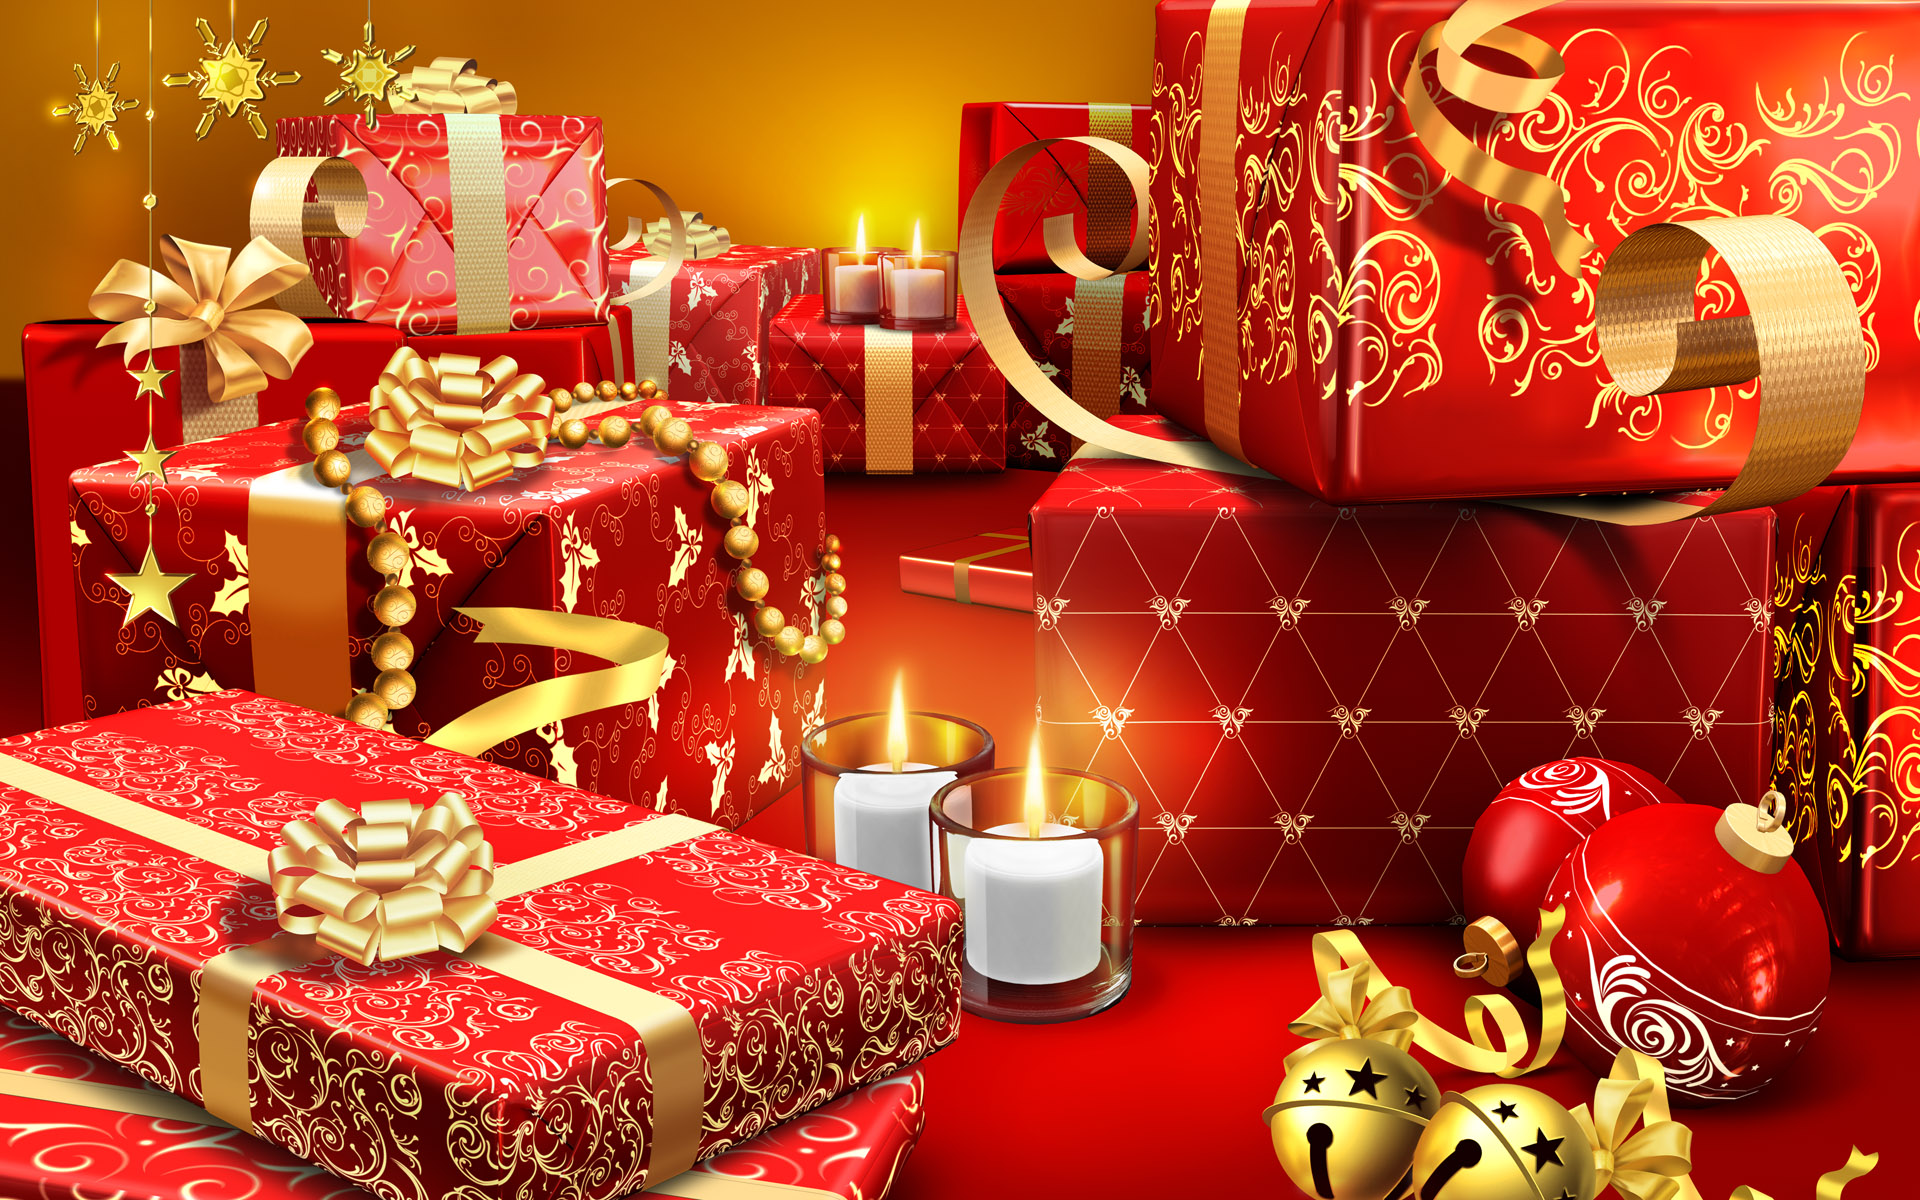 Best christmas Pictures HD Christmas Wallpapers Desktop Backgrounds 1920x1200